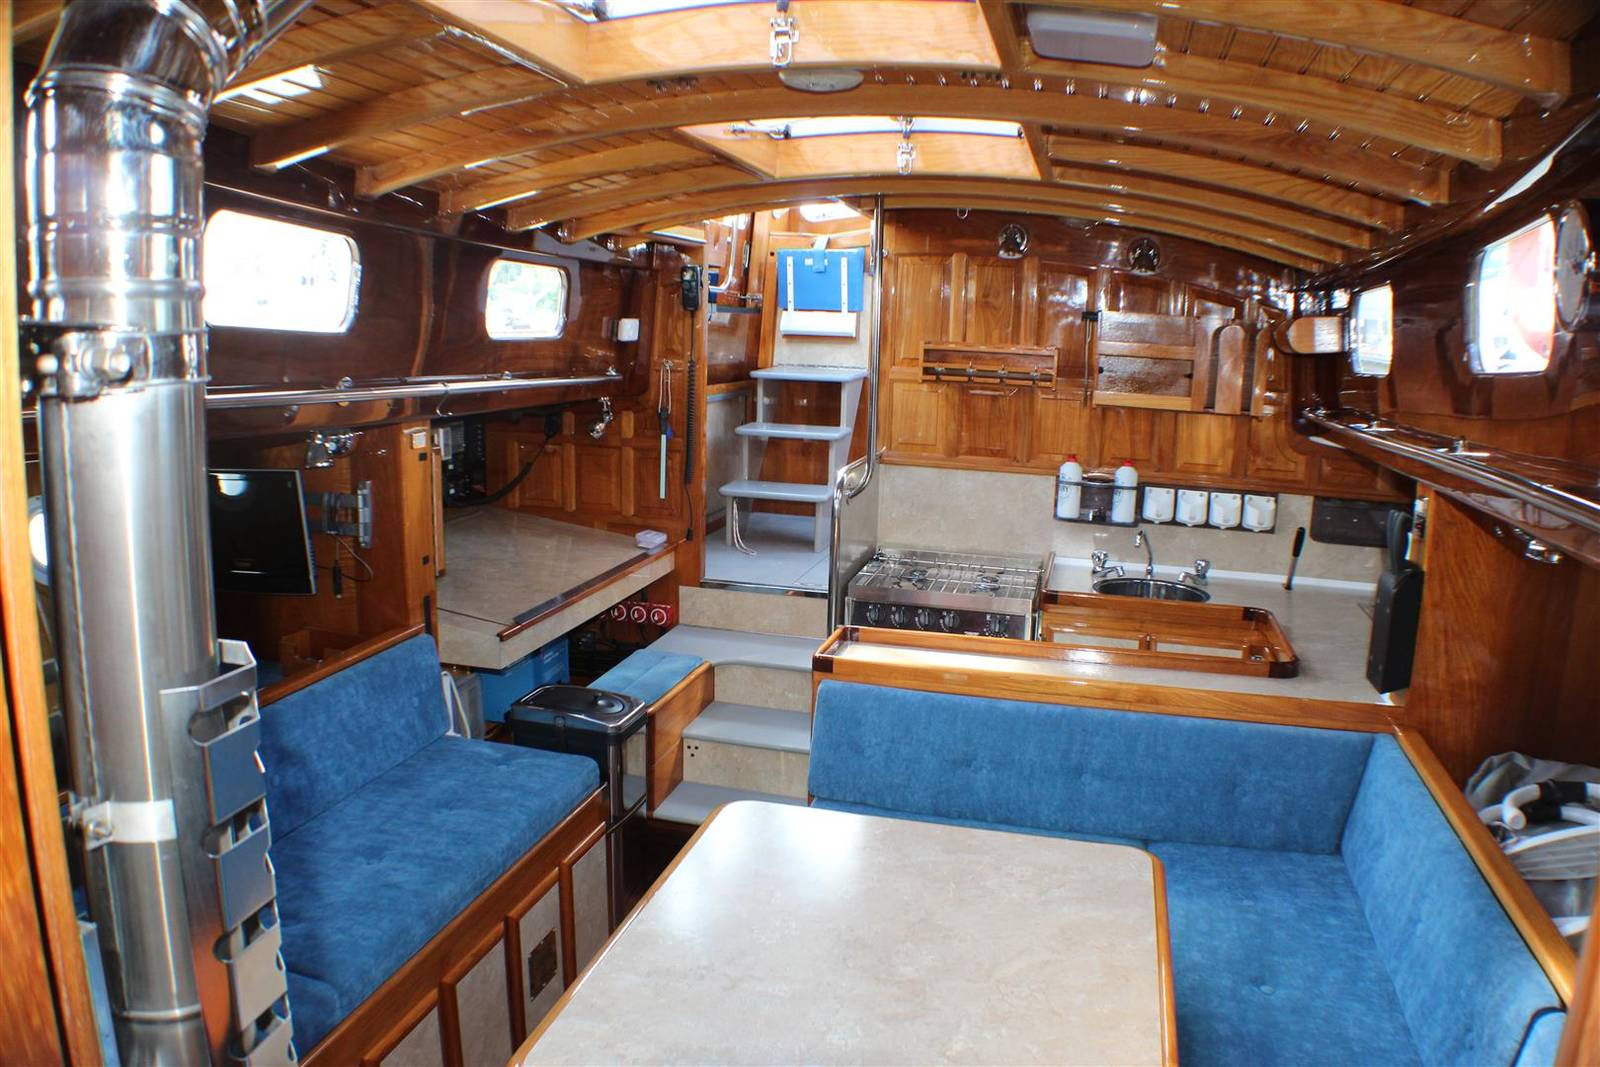 Drive A Tank >> J Francis Jones Ketch Motor-Sailer 1962 Motorsailer For Sale in Ashore Conwy Marina - £211,500